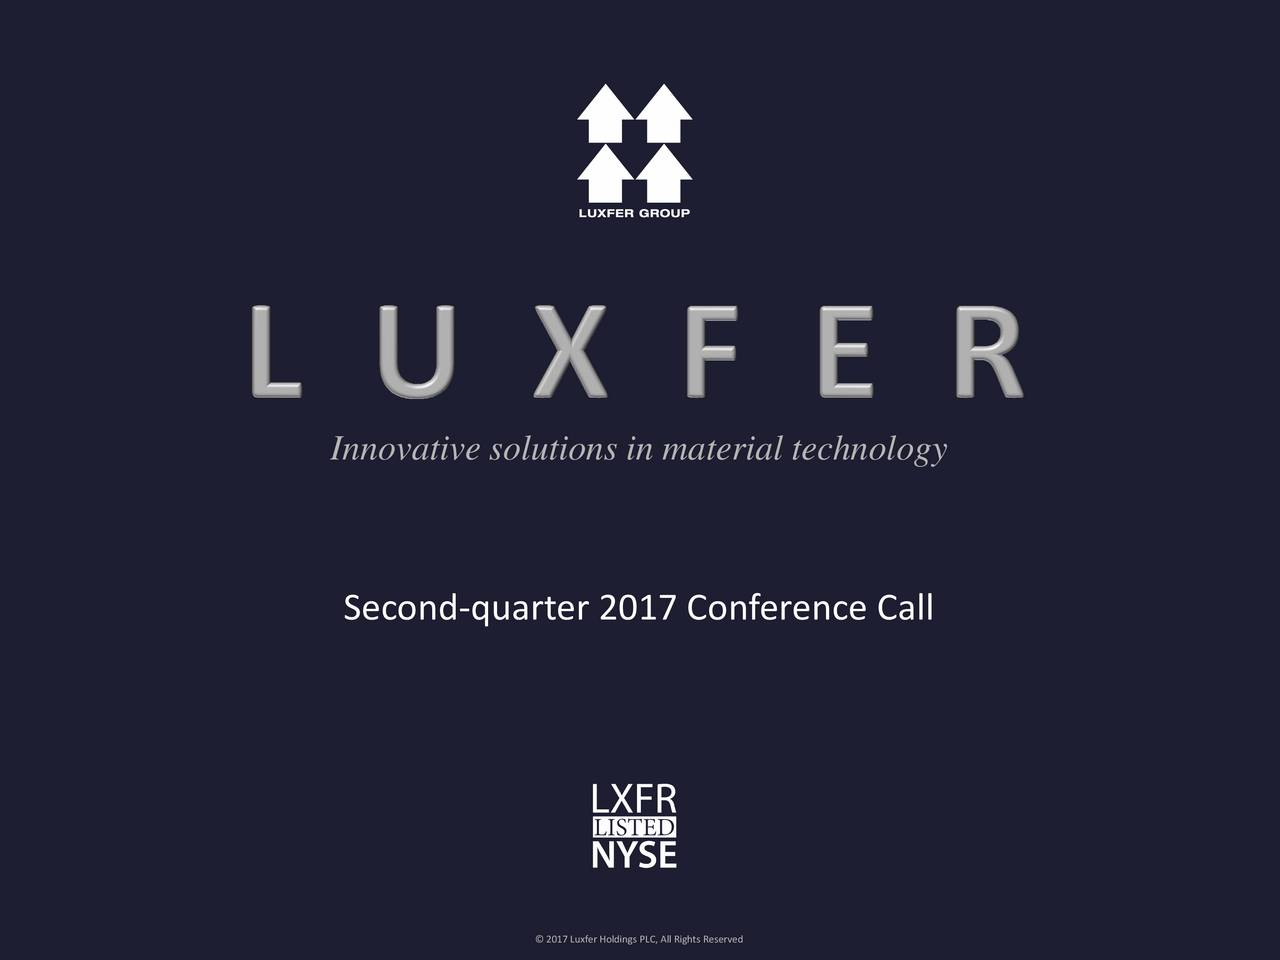 Second-quarter 2017 Conference Call LUXFER GROUP  2017 Luxfer Holdings PLC, All Rights Reserved 1